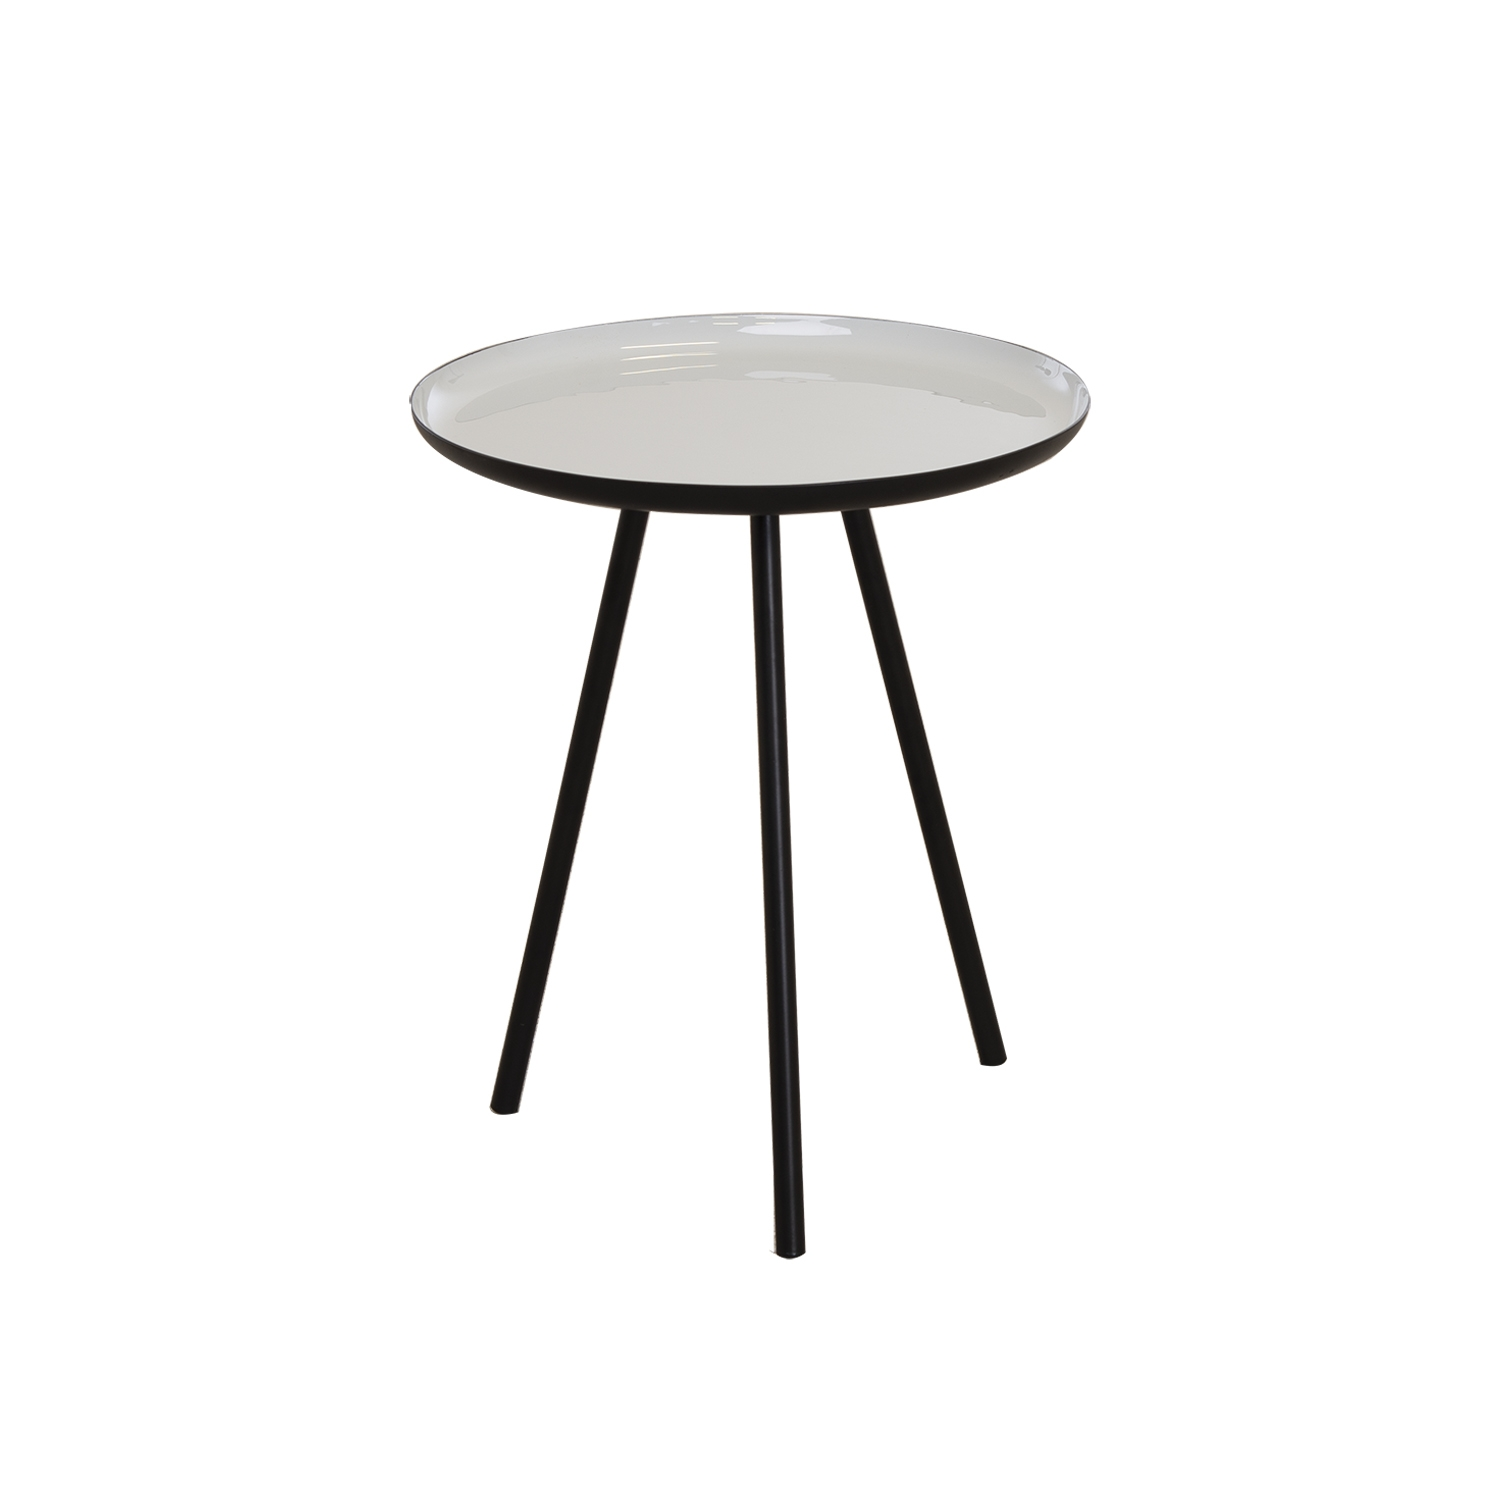 Image of Casa Tall Occasional Table, Grey